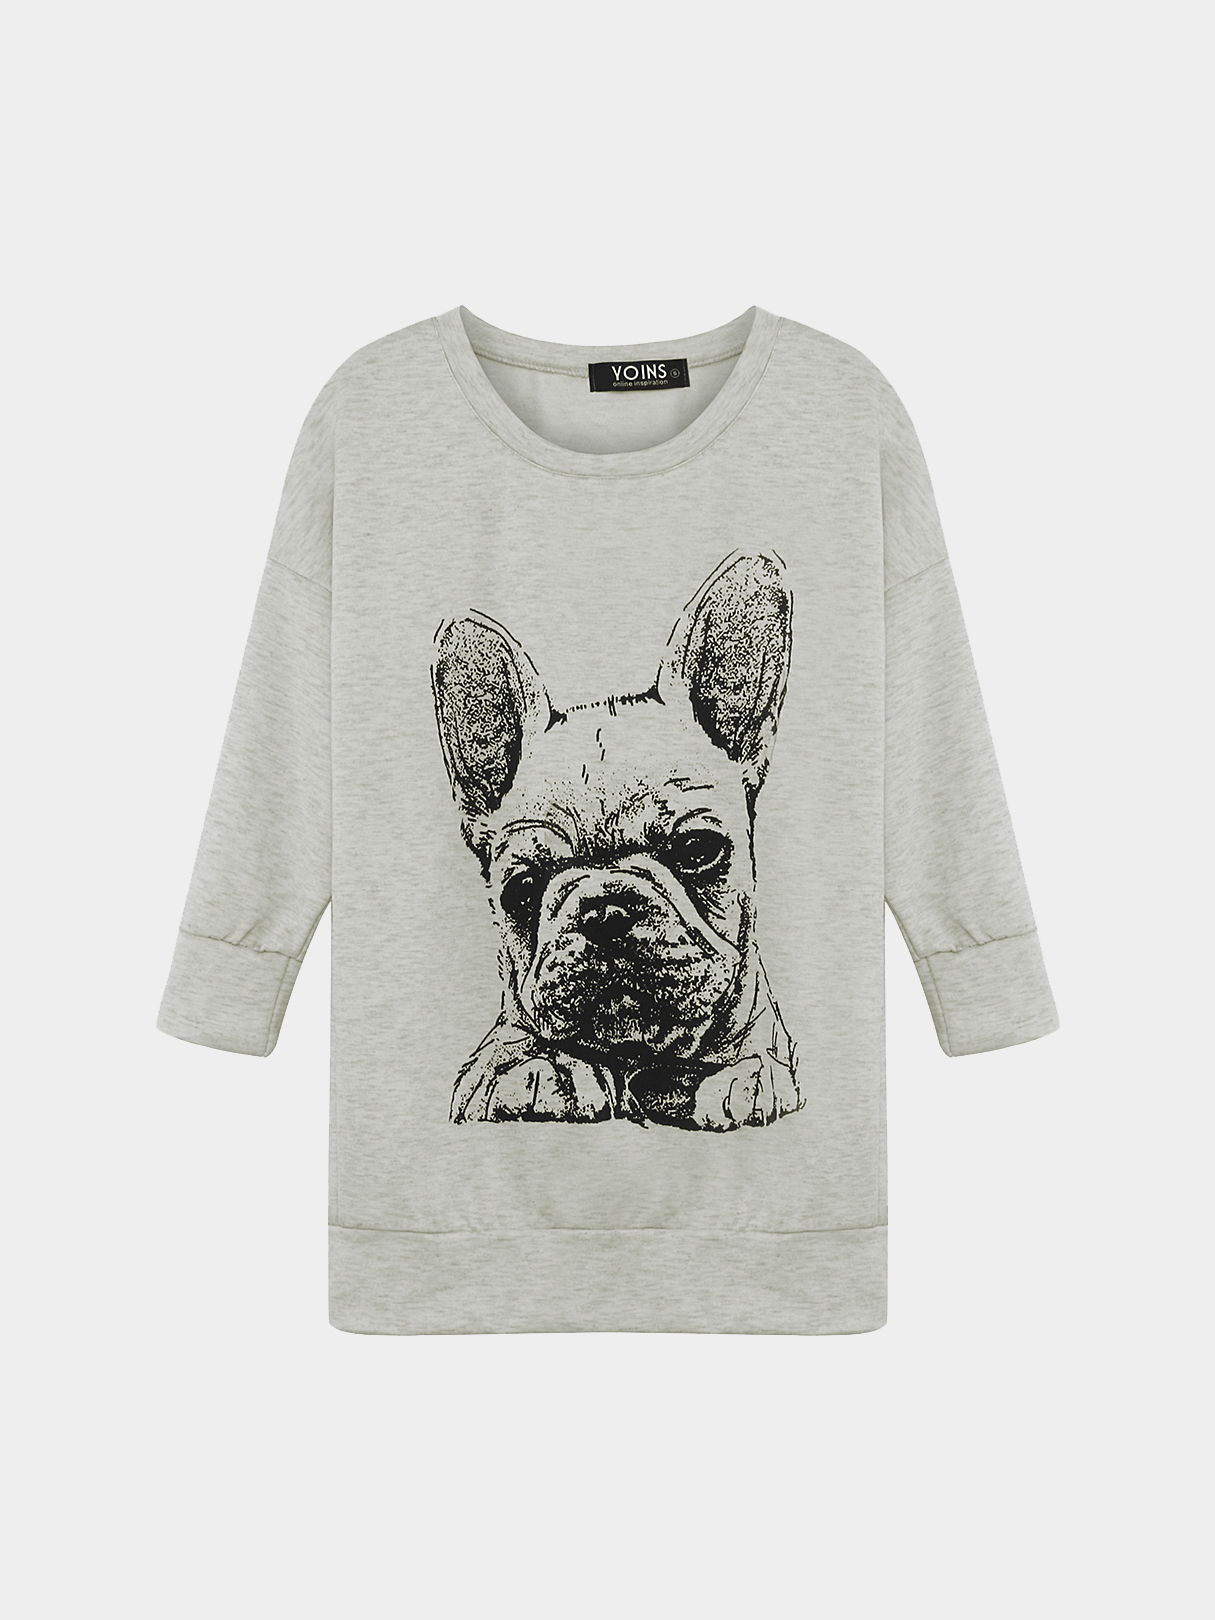 Bulldog Print Sweatshirt in Grey